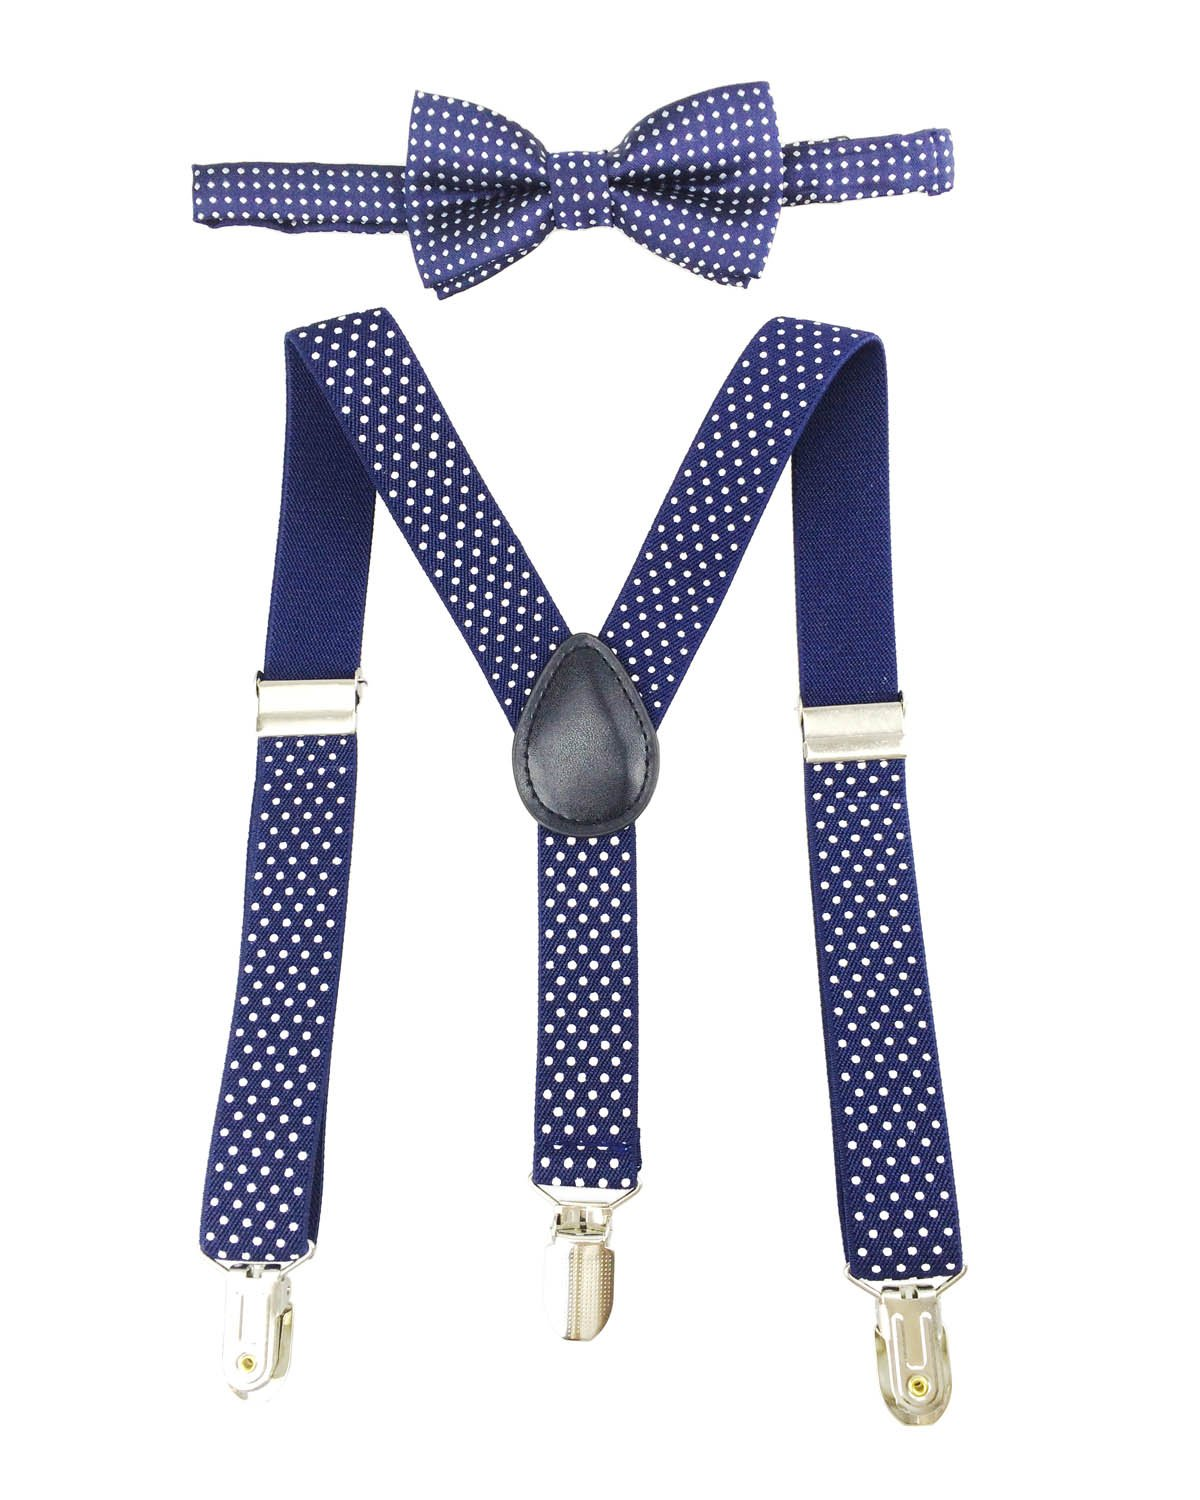 Suspenders for Boys 3 Clip-Ends Y Back Adjustable White Dot with Bowtie Set for Wedding Party (Blue)